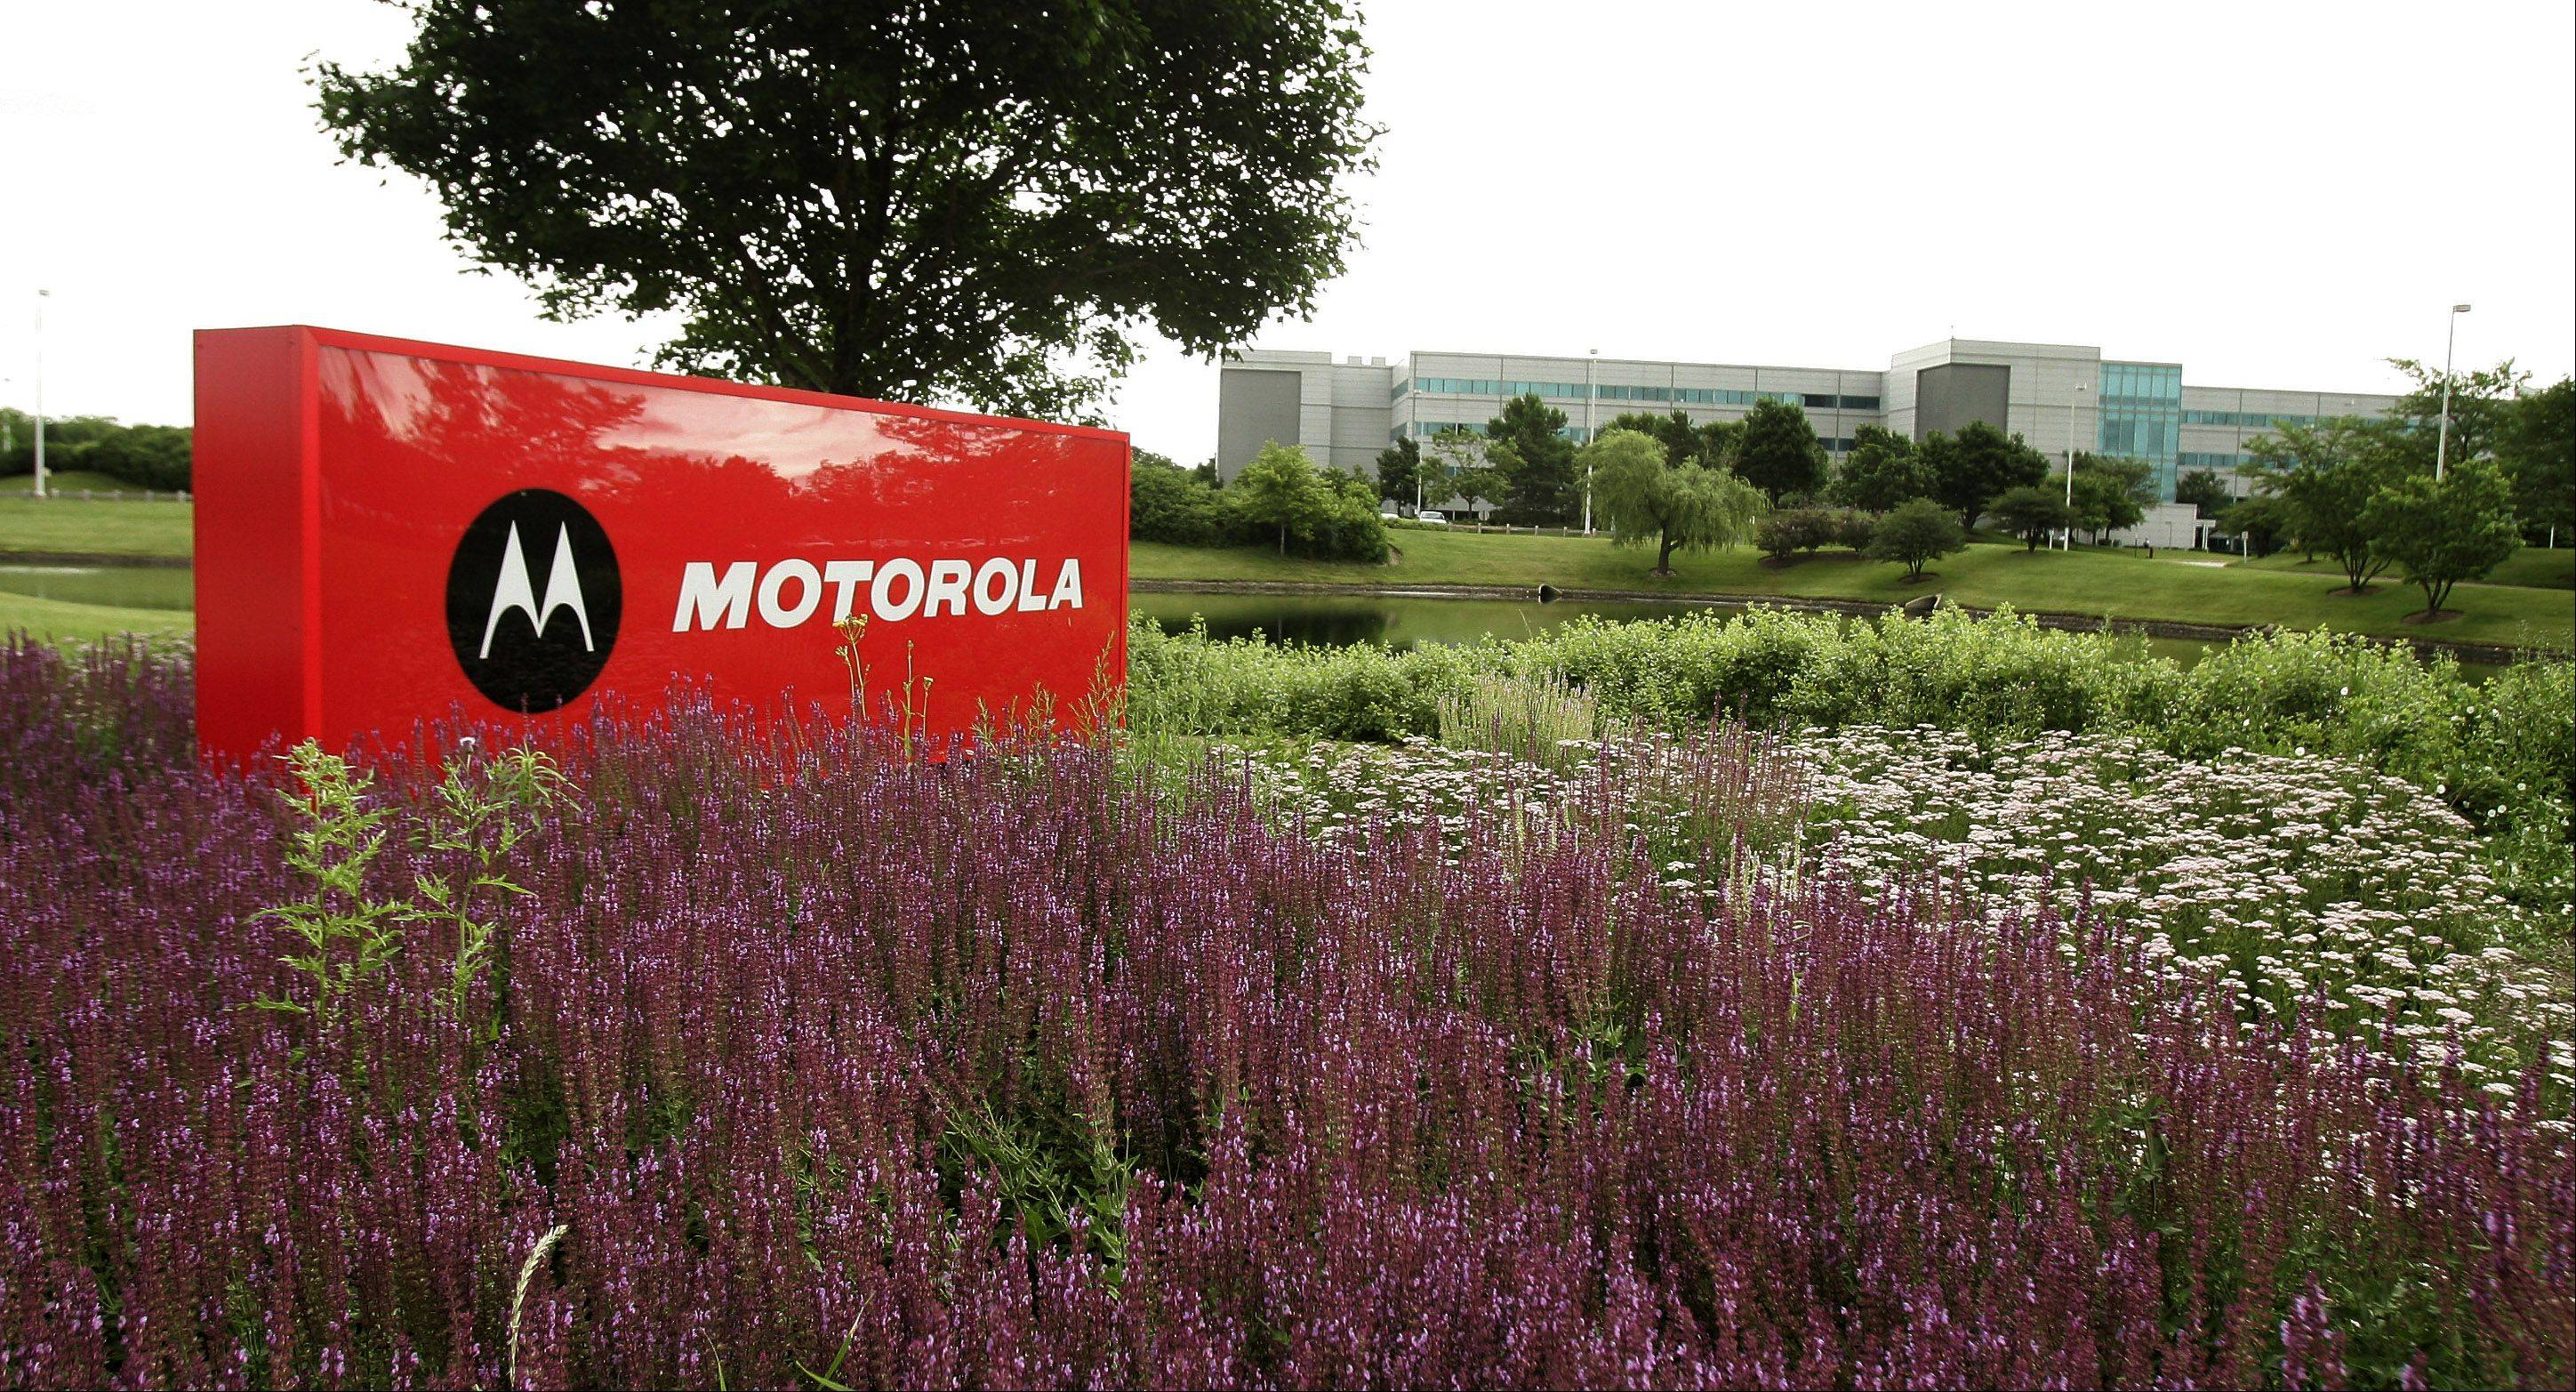 Gilbert R. Boucher II/gboucher@dailyherald.com  Google announced Monday it will acquire Libertyville-based Motorola Mobility for $12.5 billion.